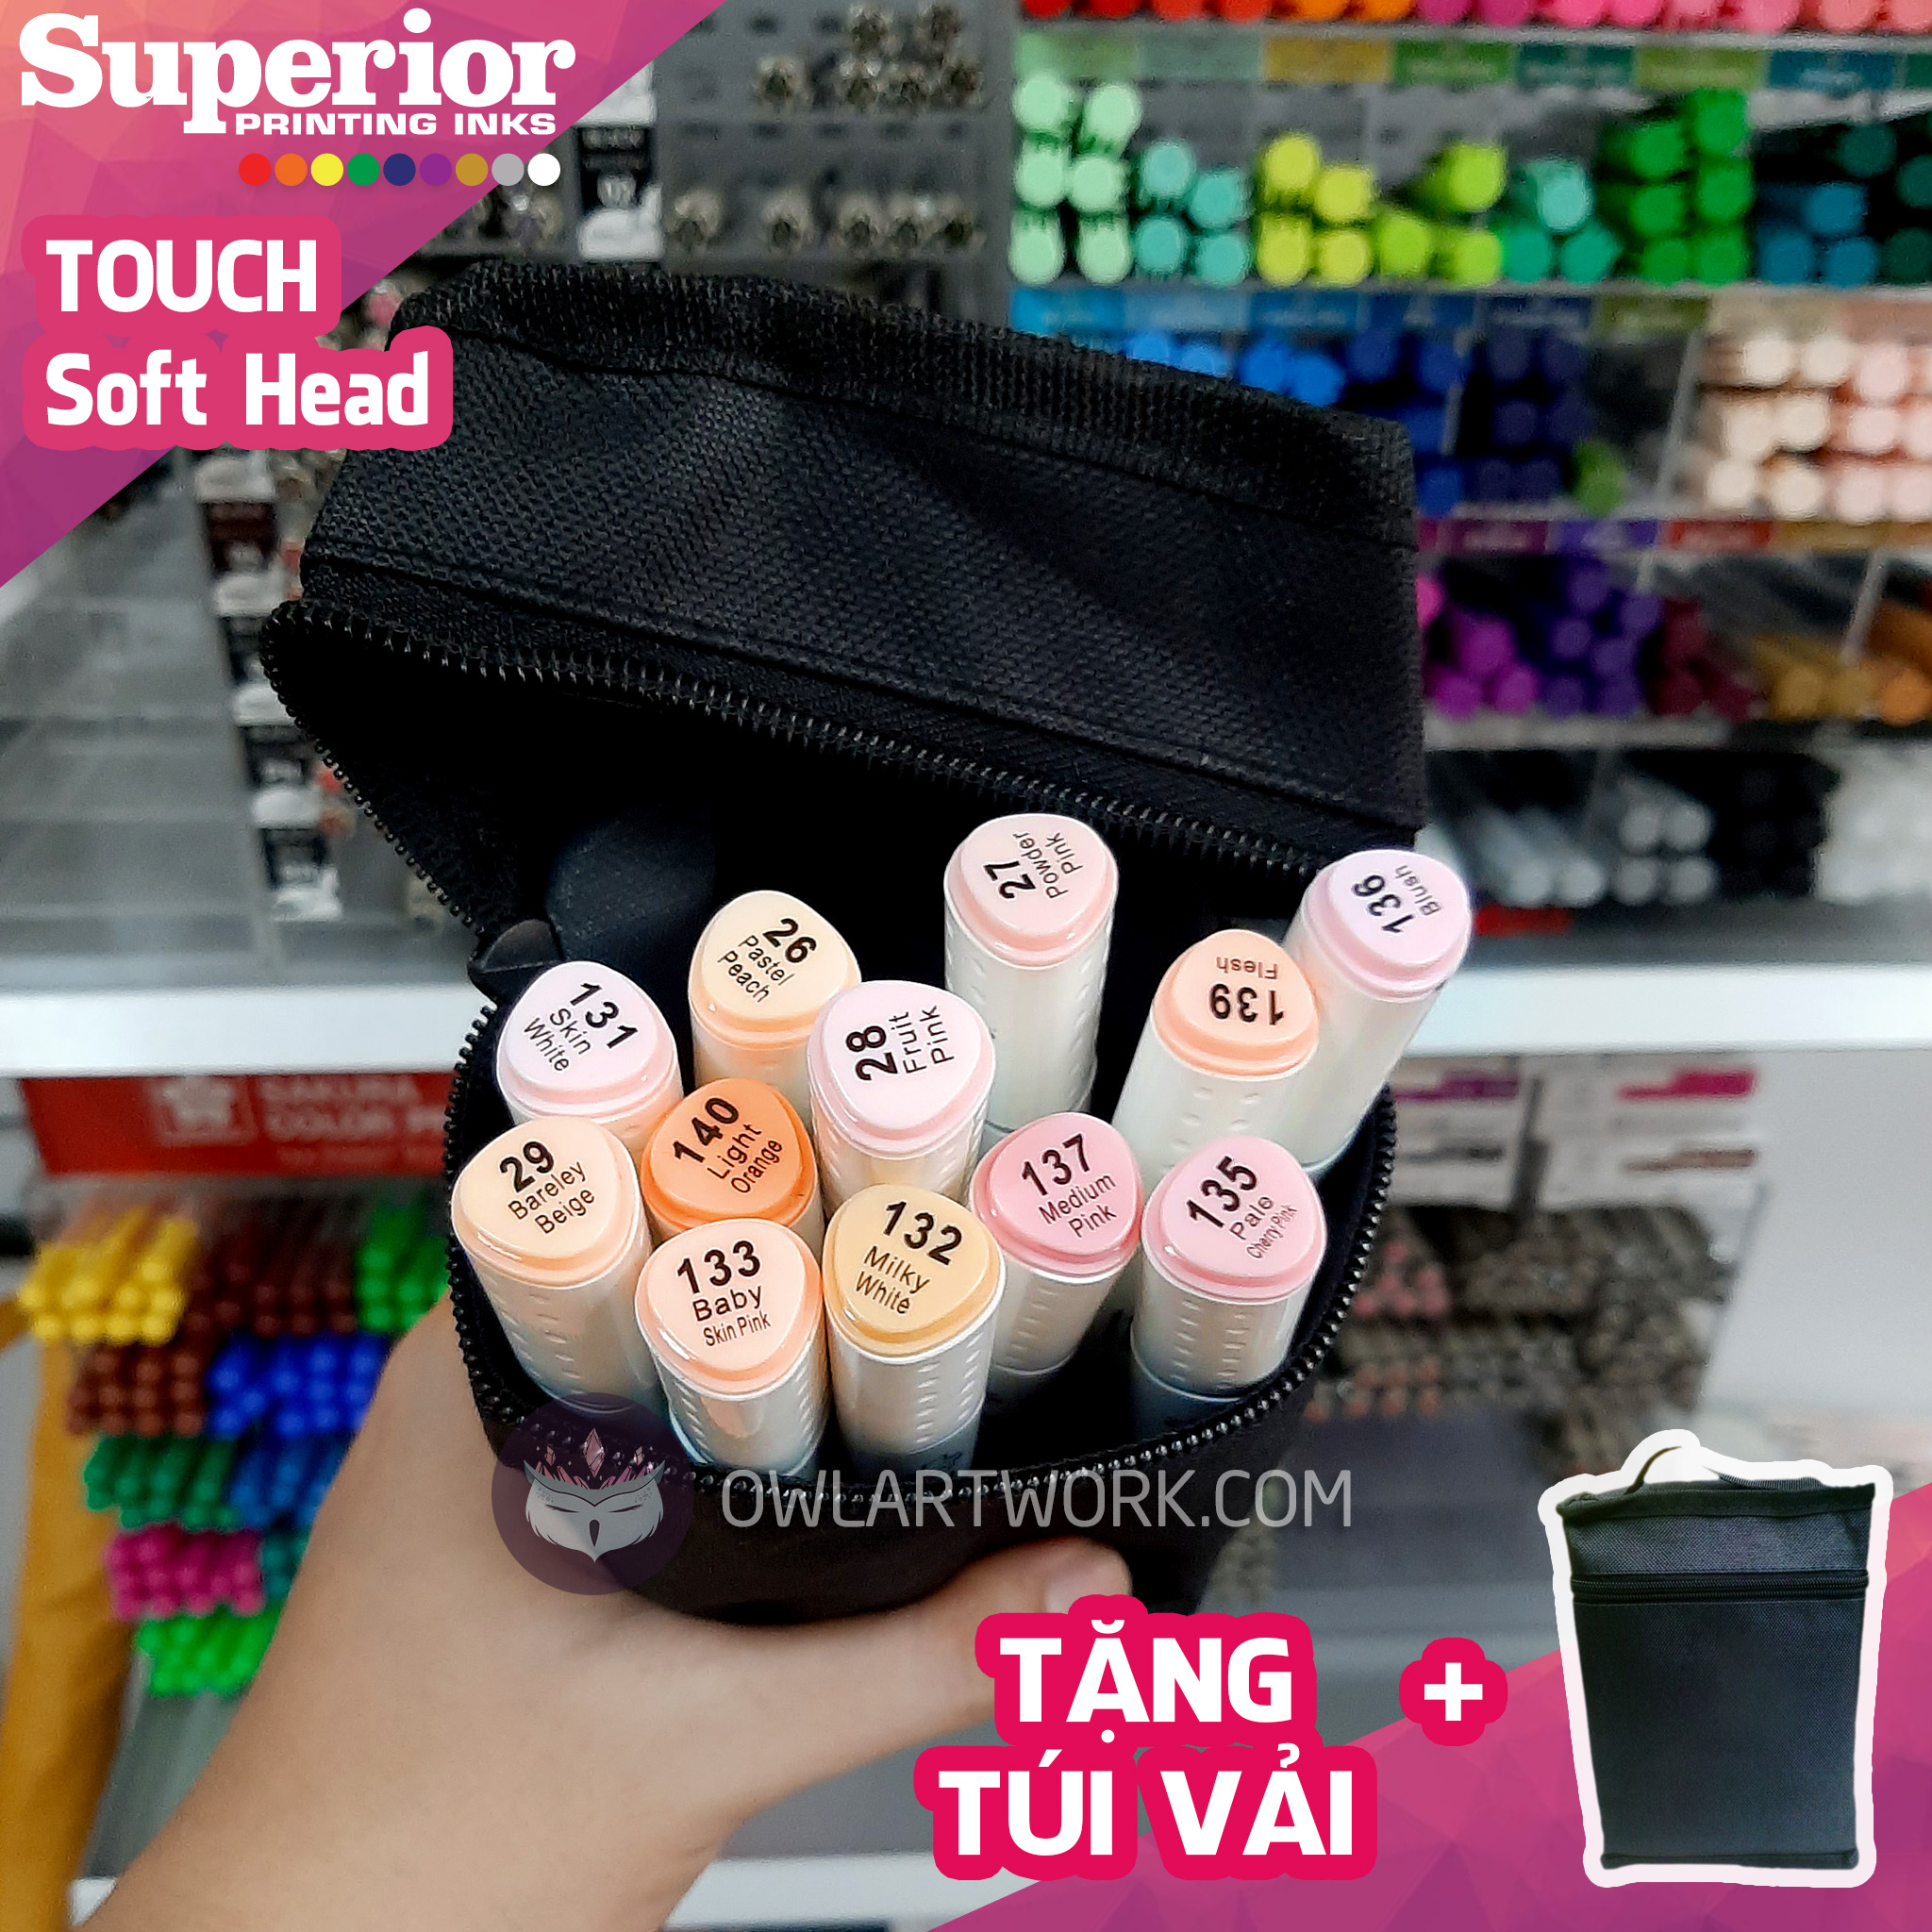 touch-soft-head-2